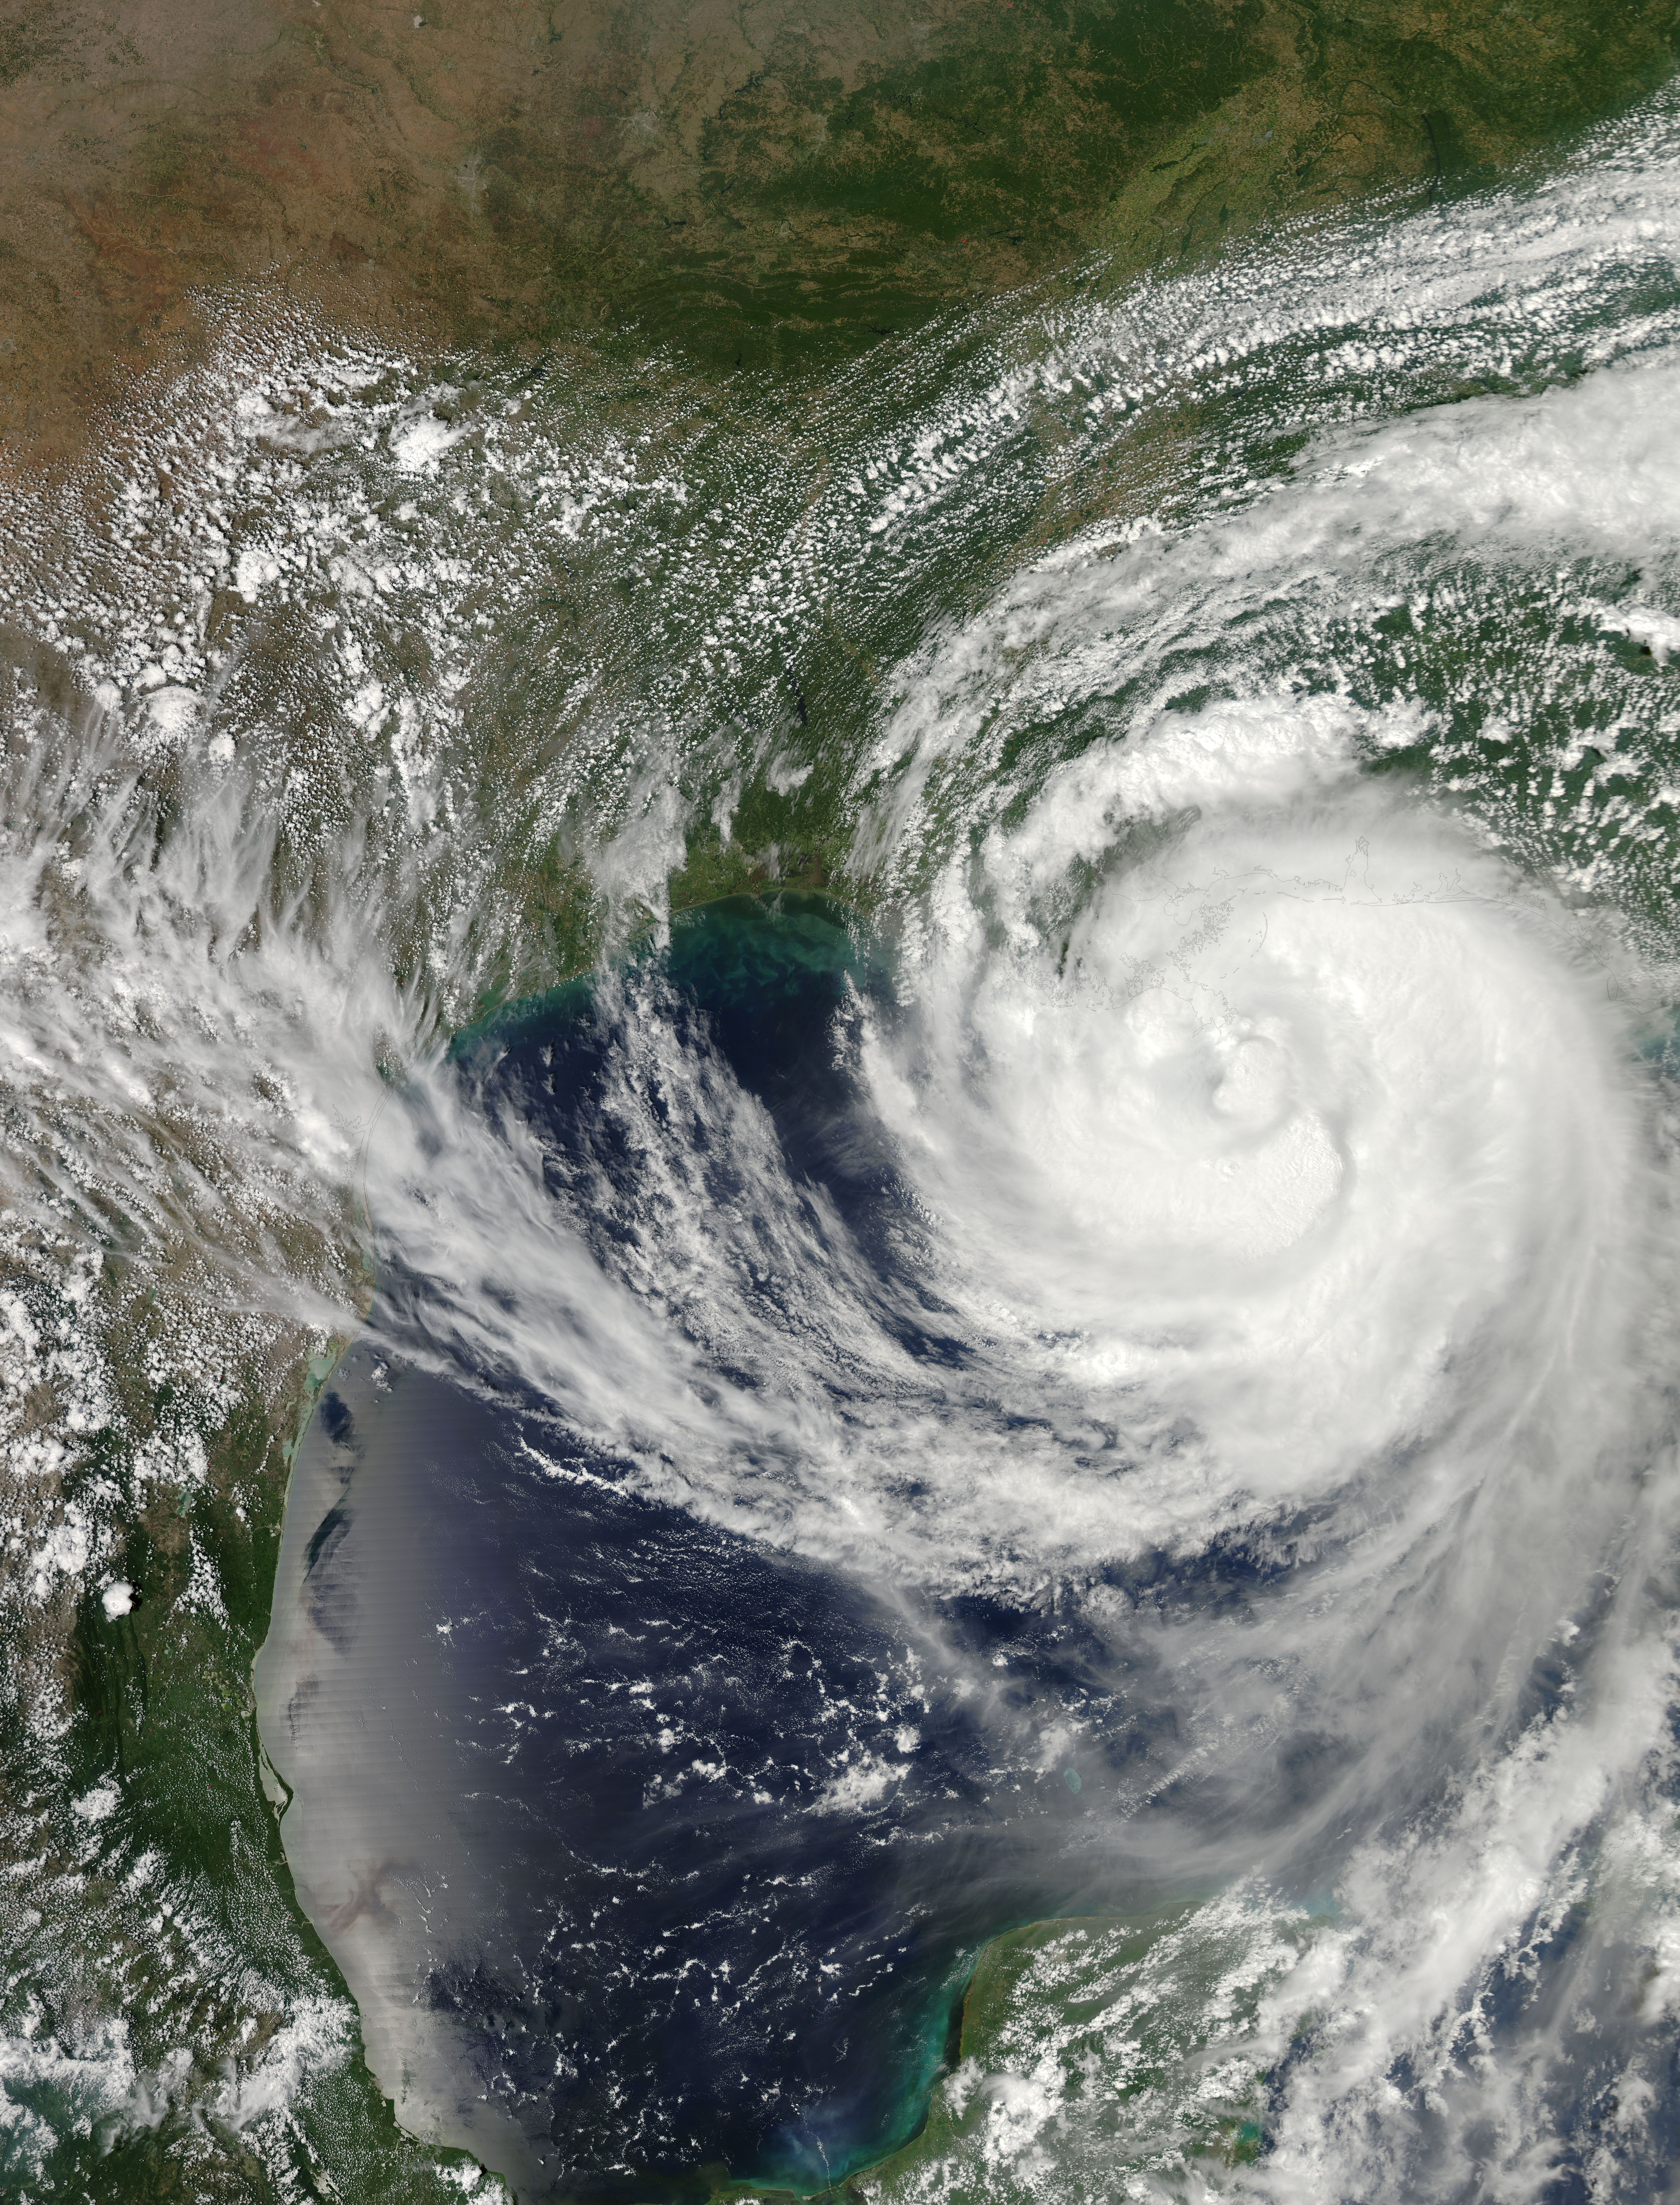 Hurricane Isaac Formation In The Gulf Of Mexico On Aug 2012 On The Gulf Coast Of Mississippi Spirals In Nature Mother Earth Mother Nature